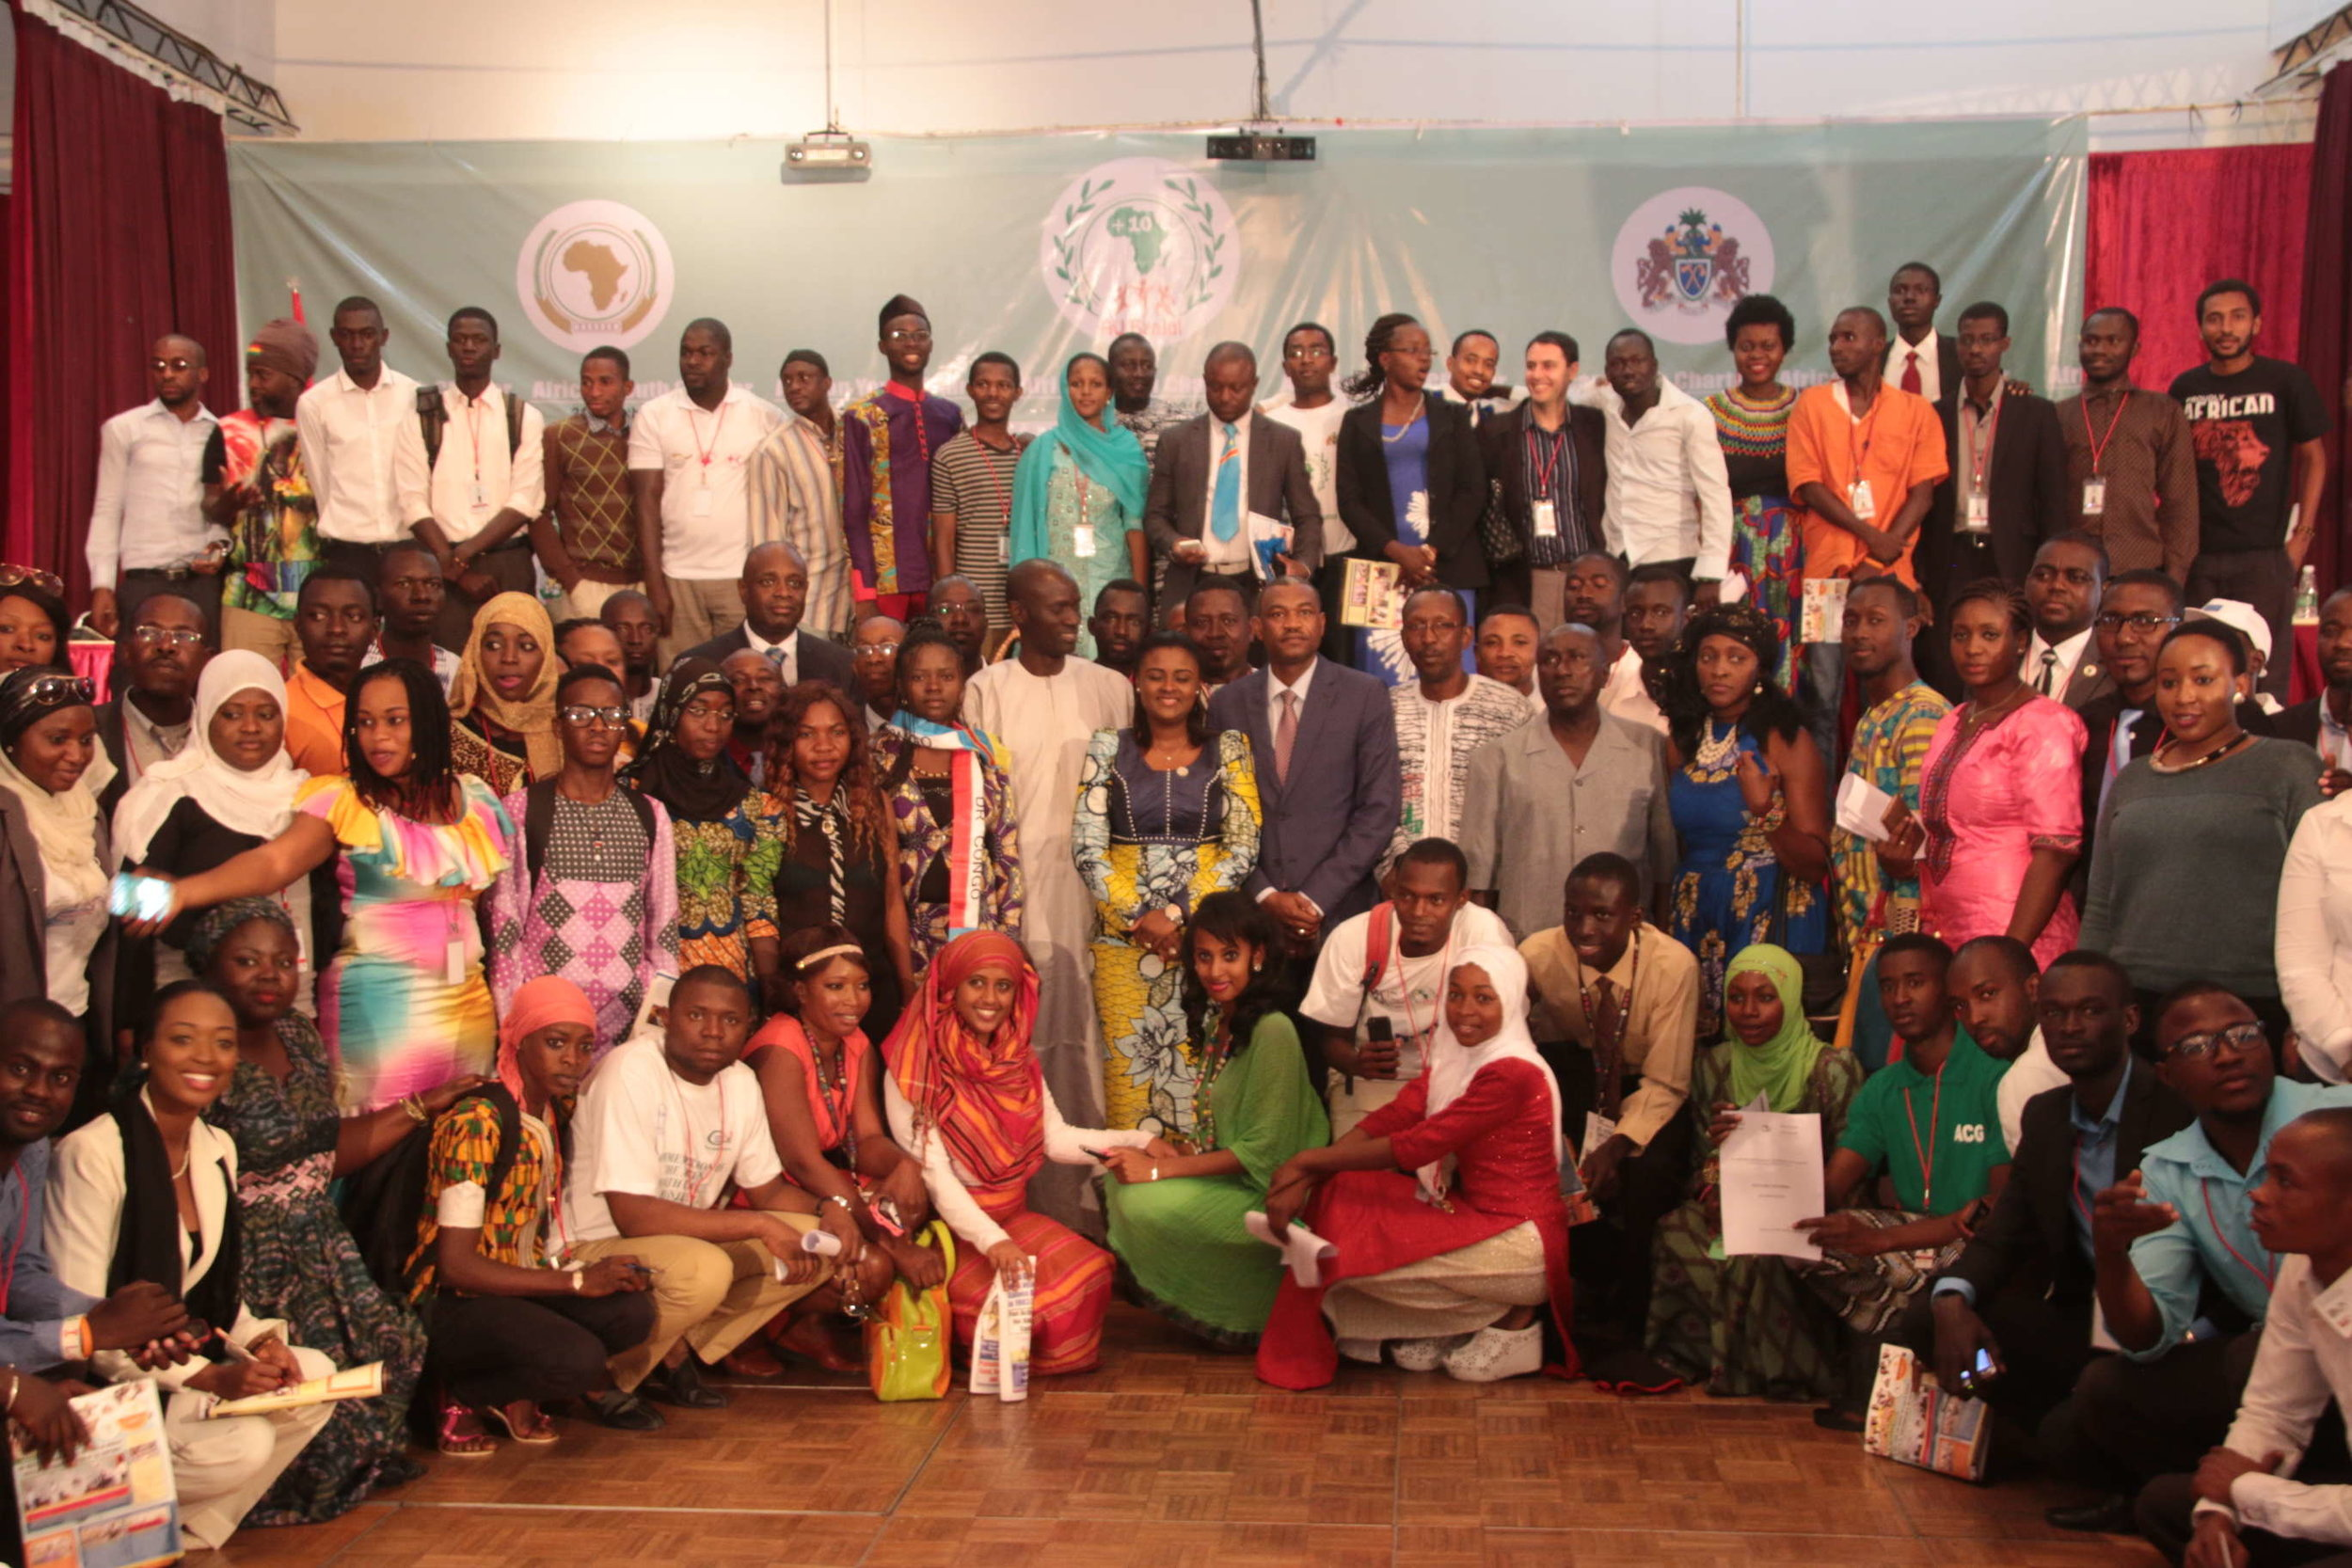 Gambia Hosts 3rd Pan African Youth Conference.jpg